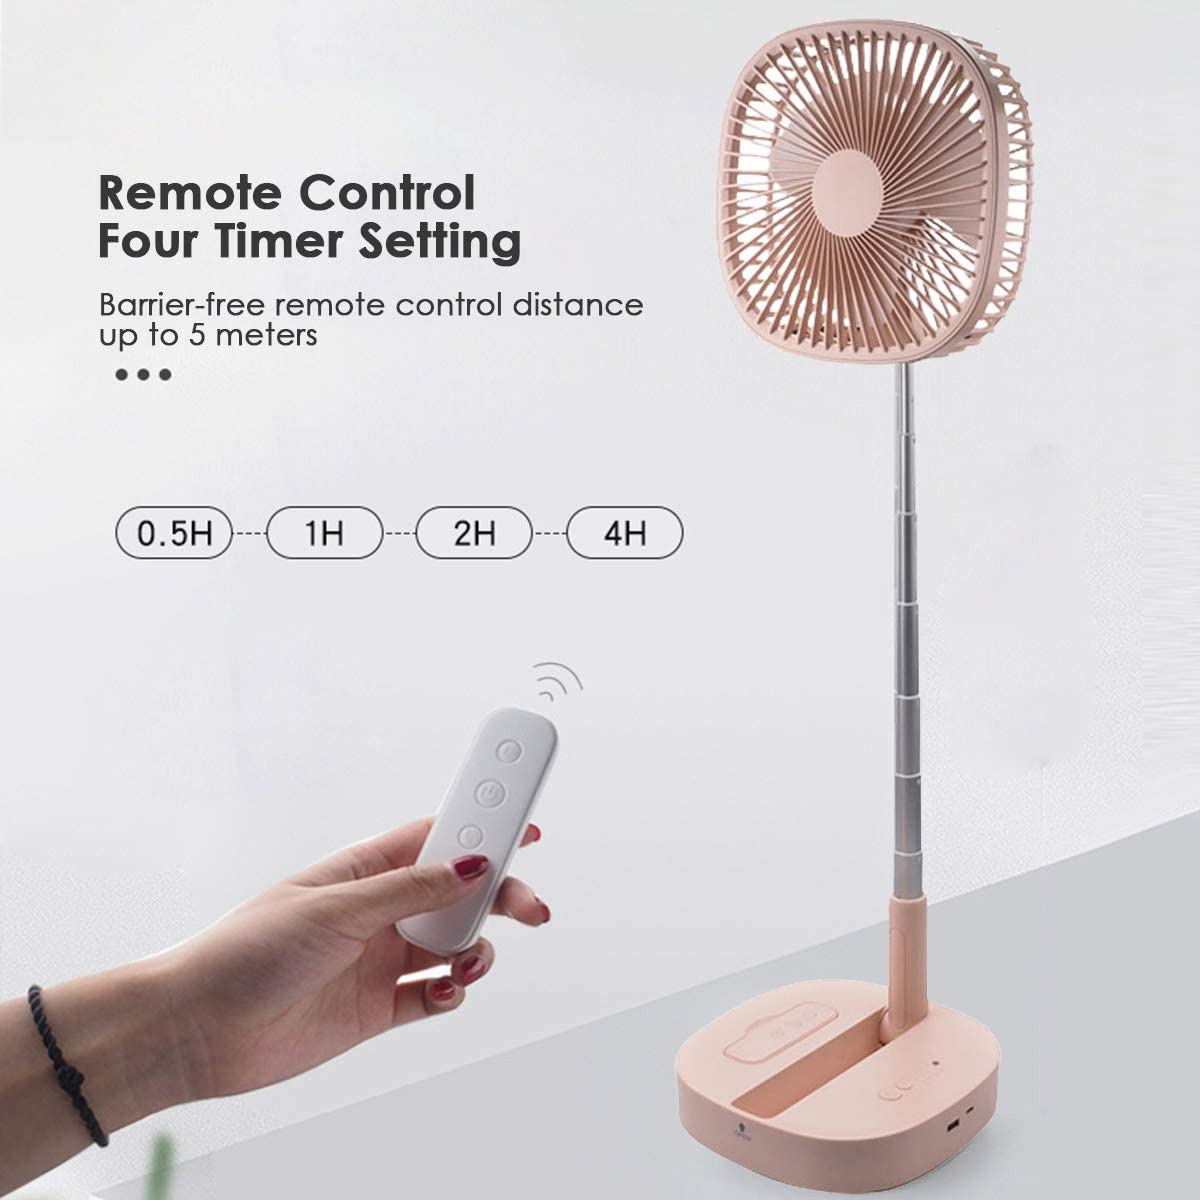 Folding Portable Telescopic Floor Air Circulator Fan Travel Mini Fans Battery Operated or USB Powered 4 Speeds Adjustable Height Pedestal Fan for Office Outdoor Camping Desk and Stand Fan